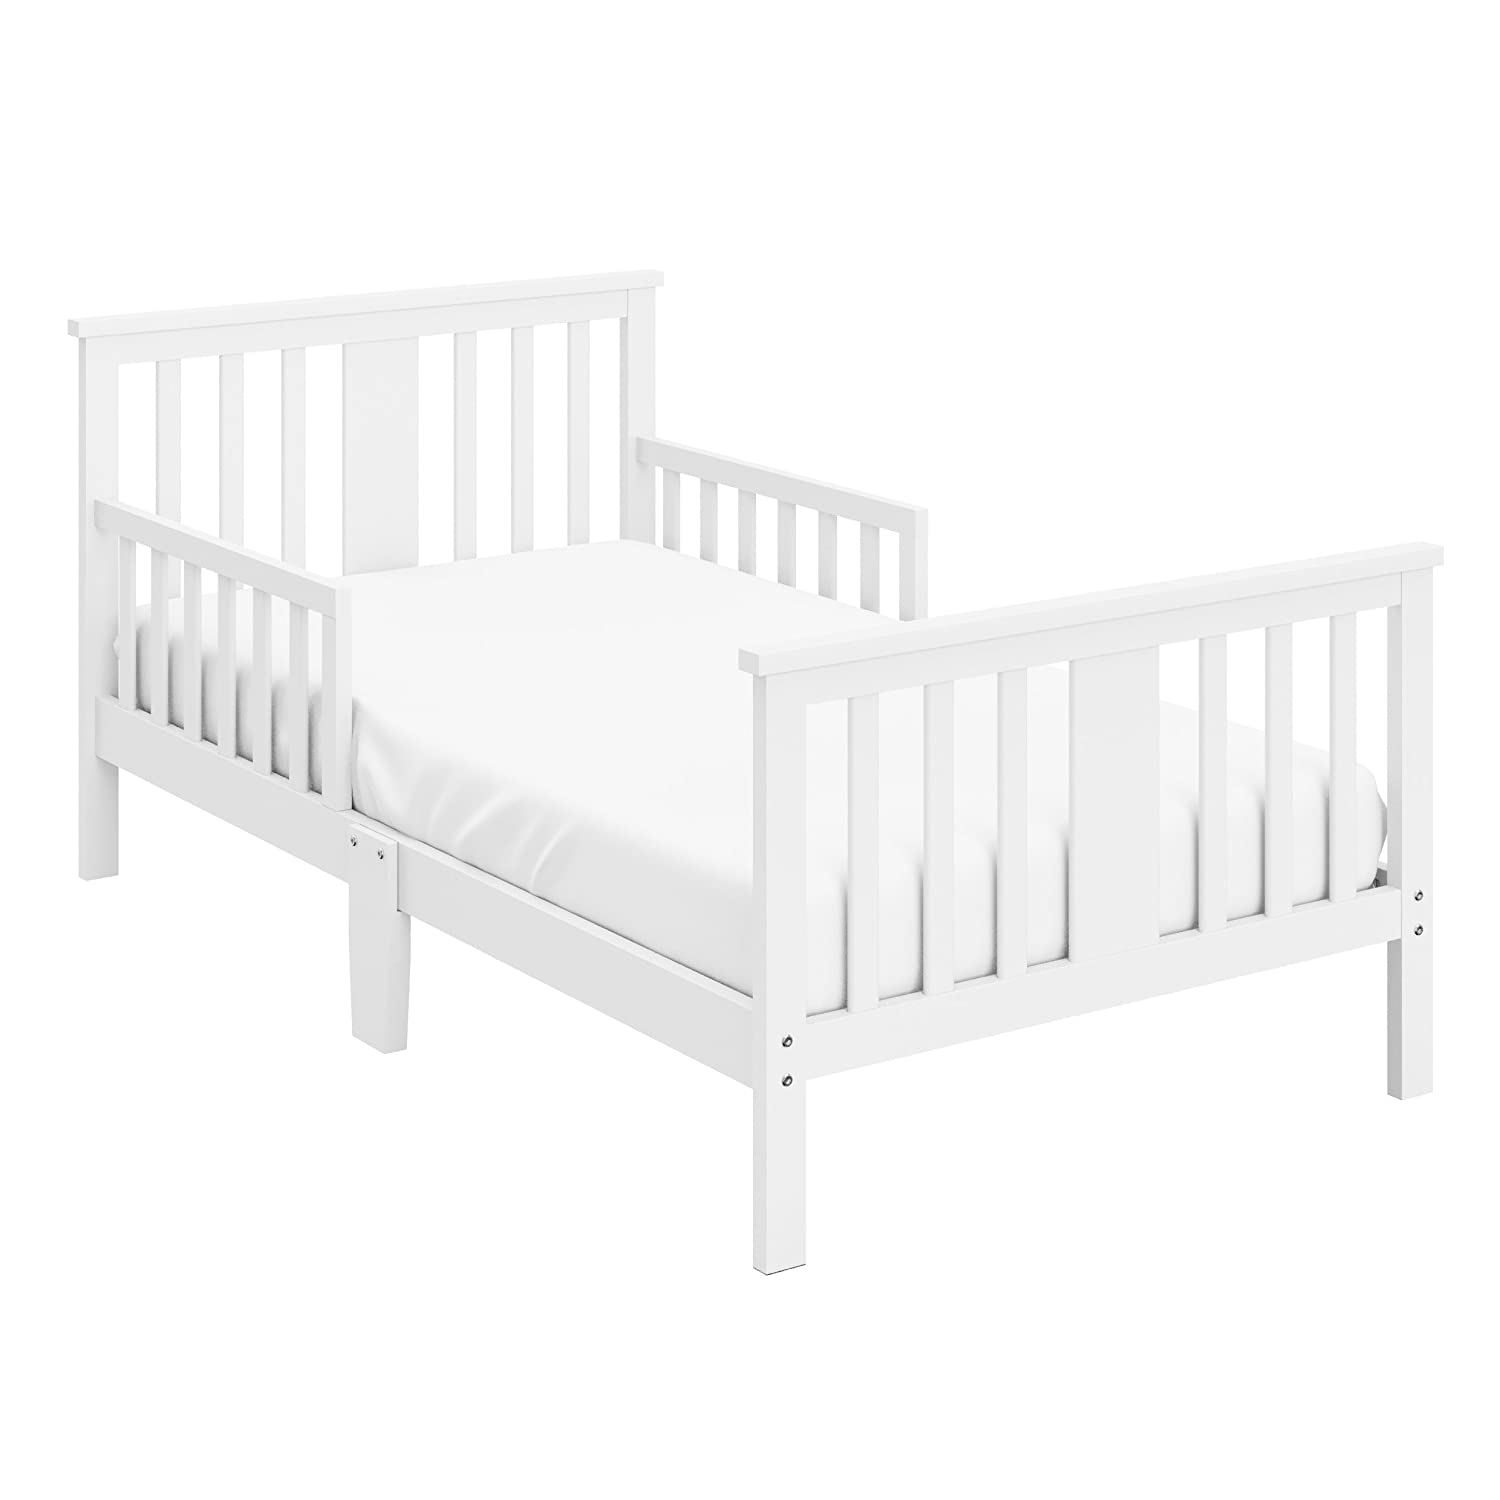 Storkcraft Mission Ridge Toddler Bed White Fits Standard-Size Toddler Mattress, Guardrails on Both Sides for Protection, Meets or Exceeds all Federal Safety Standards, Pine & Composite Construction 05250-101